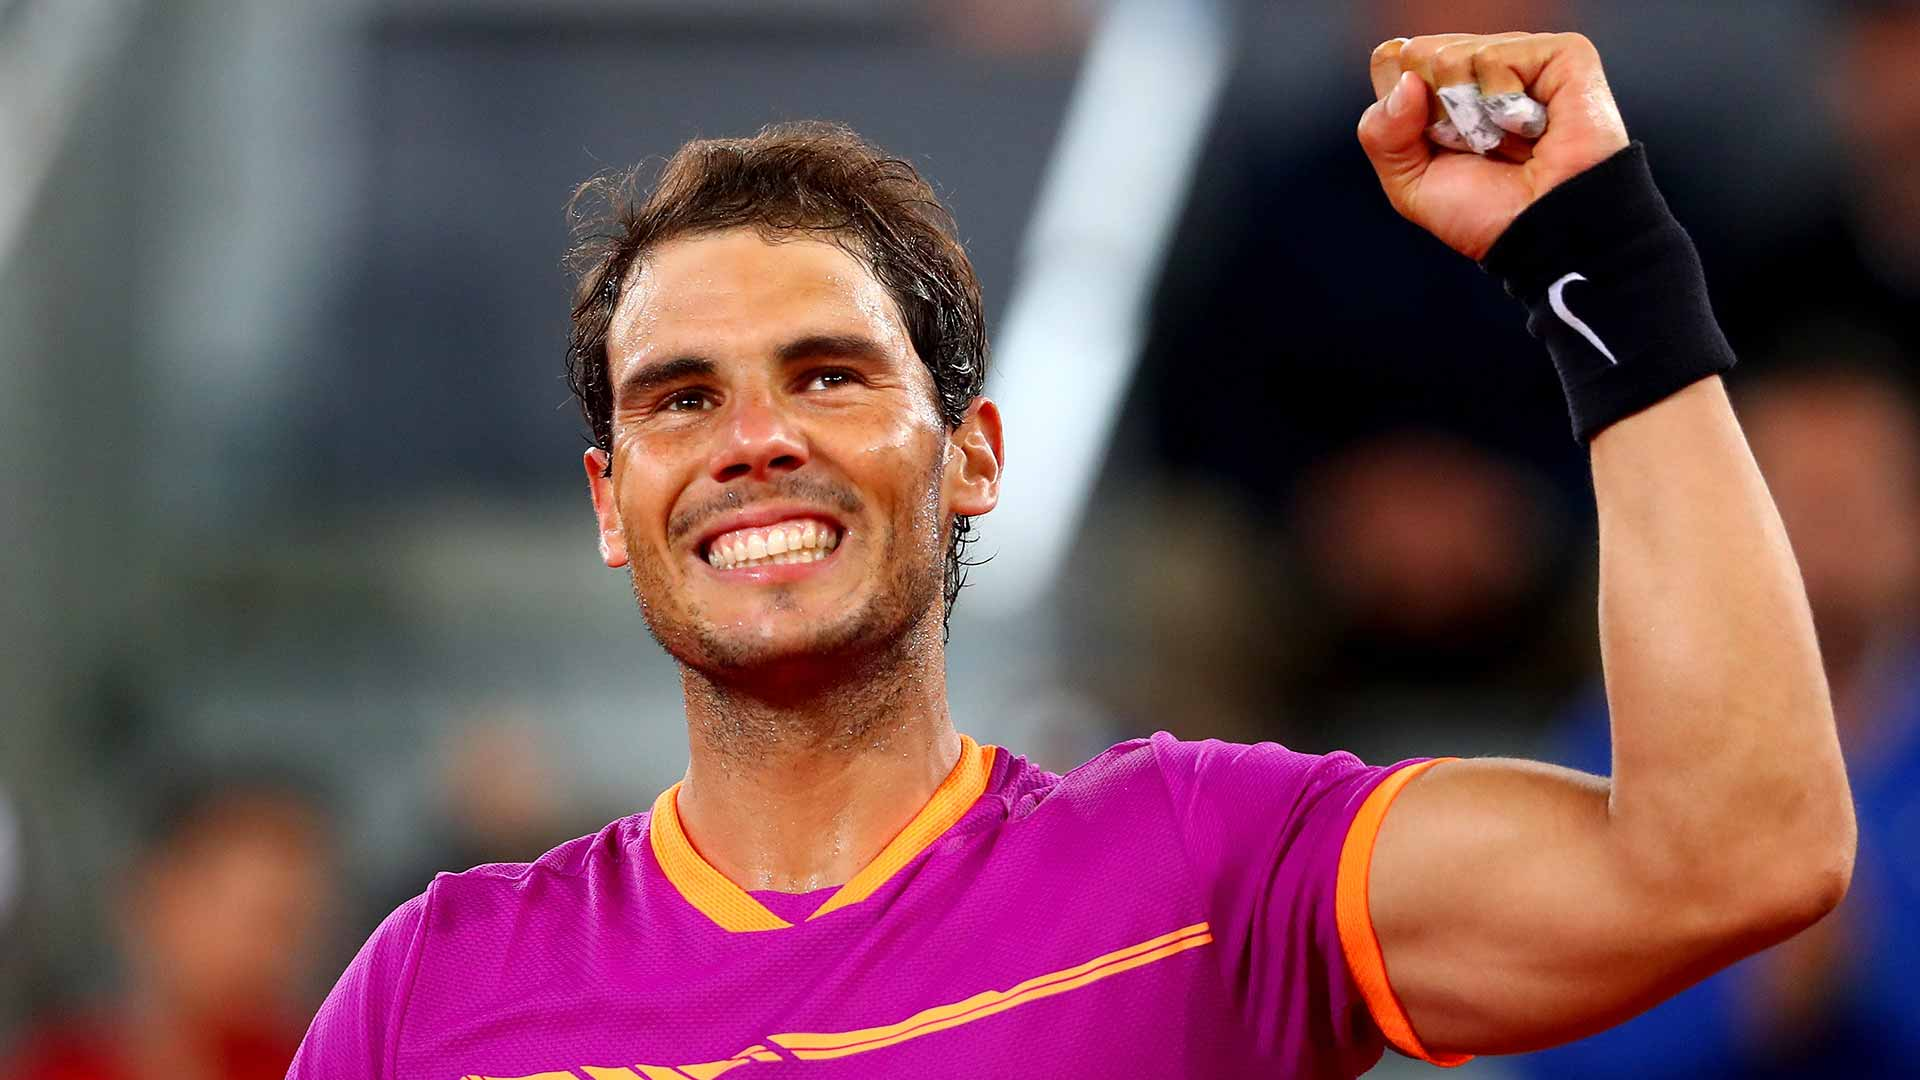 Nadal Goes For Sixth Madrid Title Federer Eyes Milestone When Is